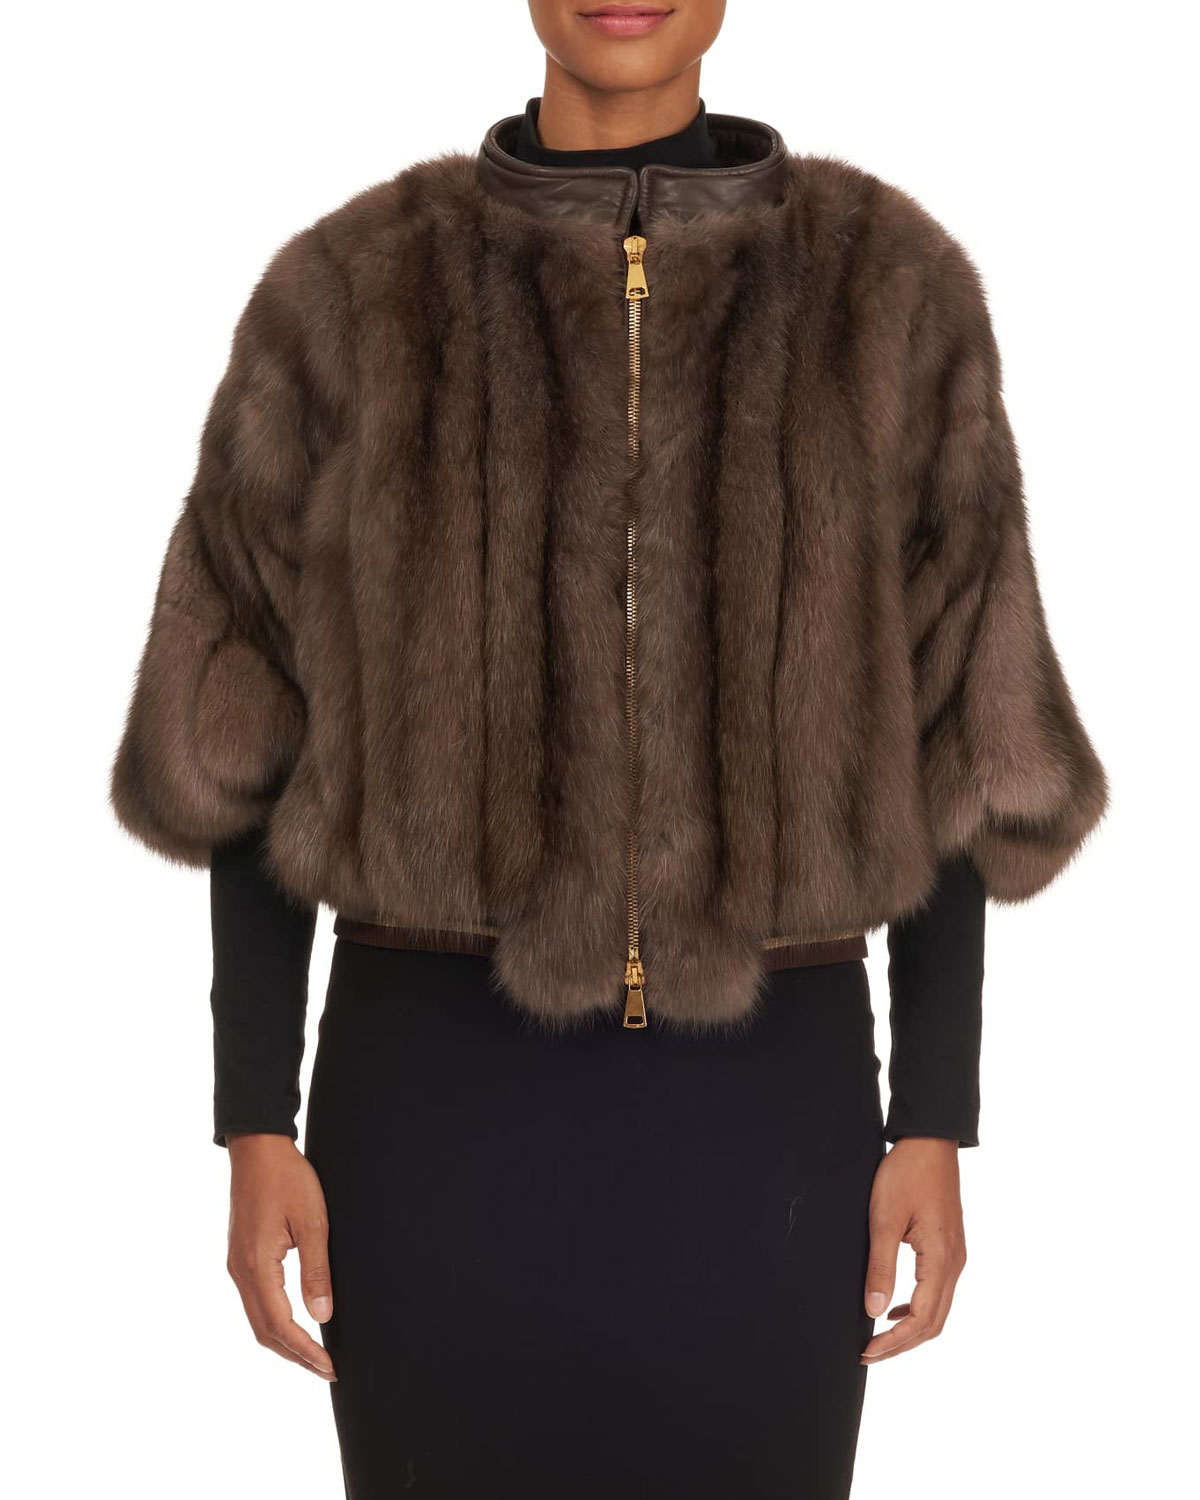 TSOUKAS Russian Sable Zip-Front Poncho Jacket in Brown